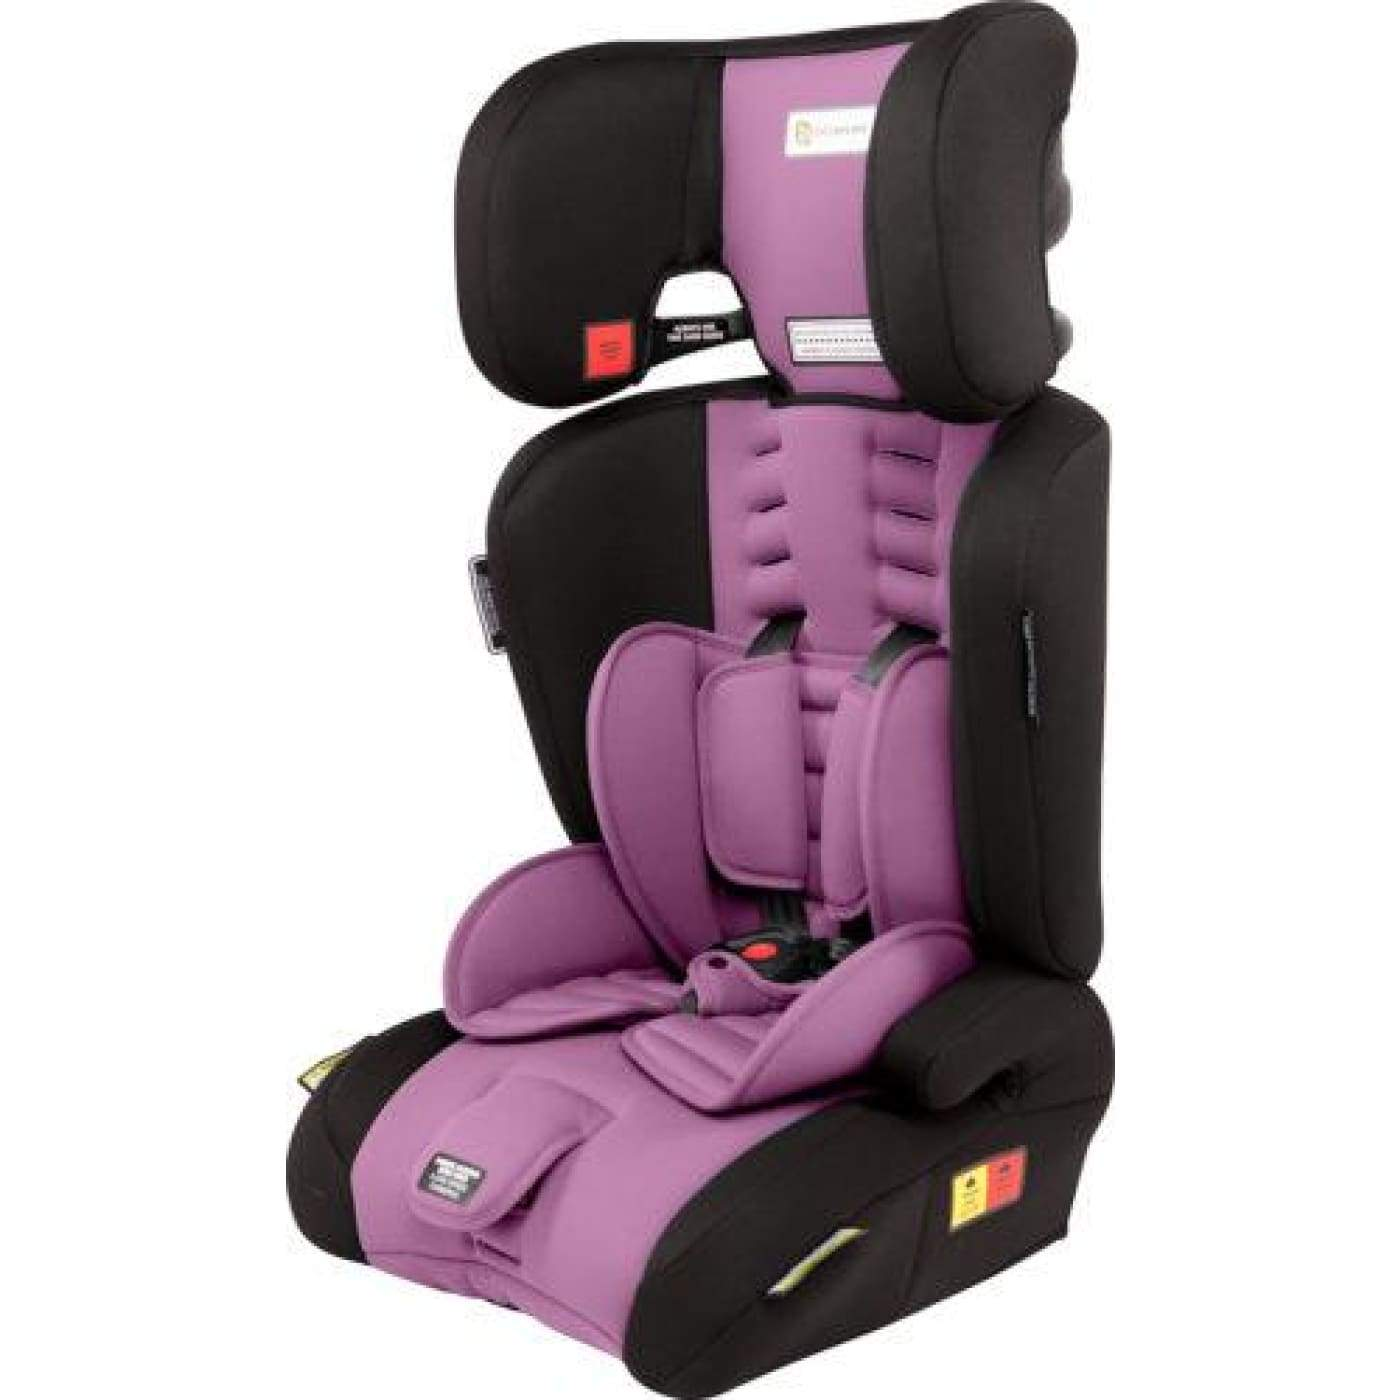 InfaSecure Visage Astra Convertible Booster 6M-8YR - Purple - CAR SEATS - CONV BOOSTERS (6M-8YR)